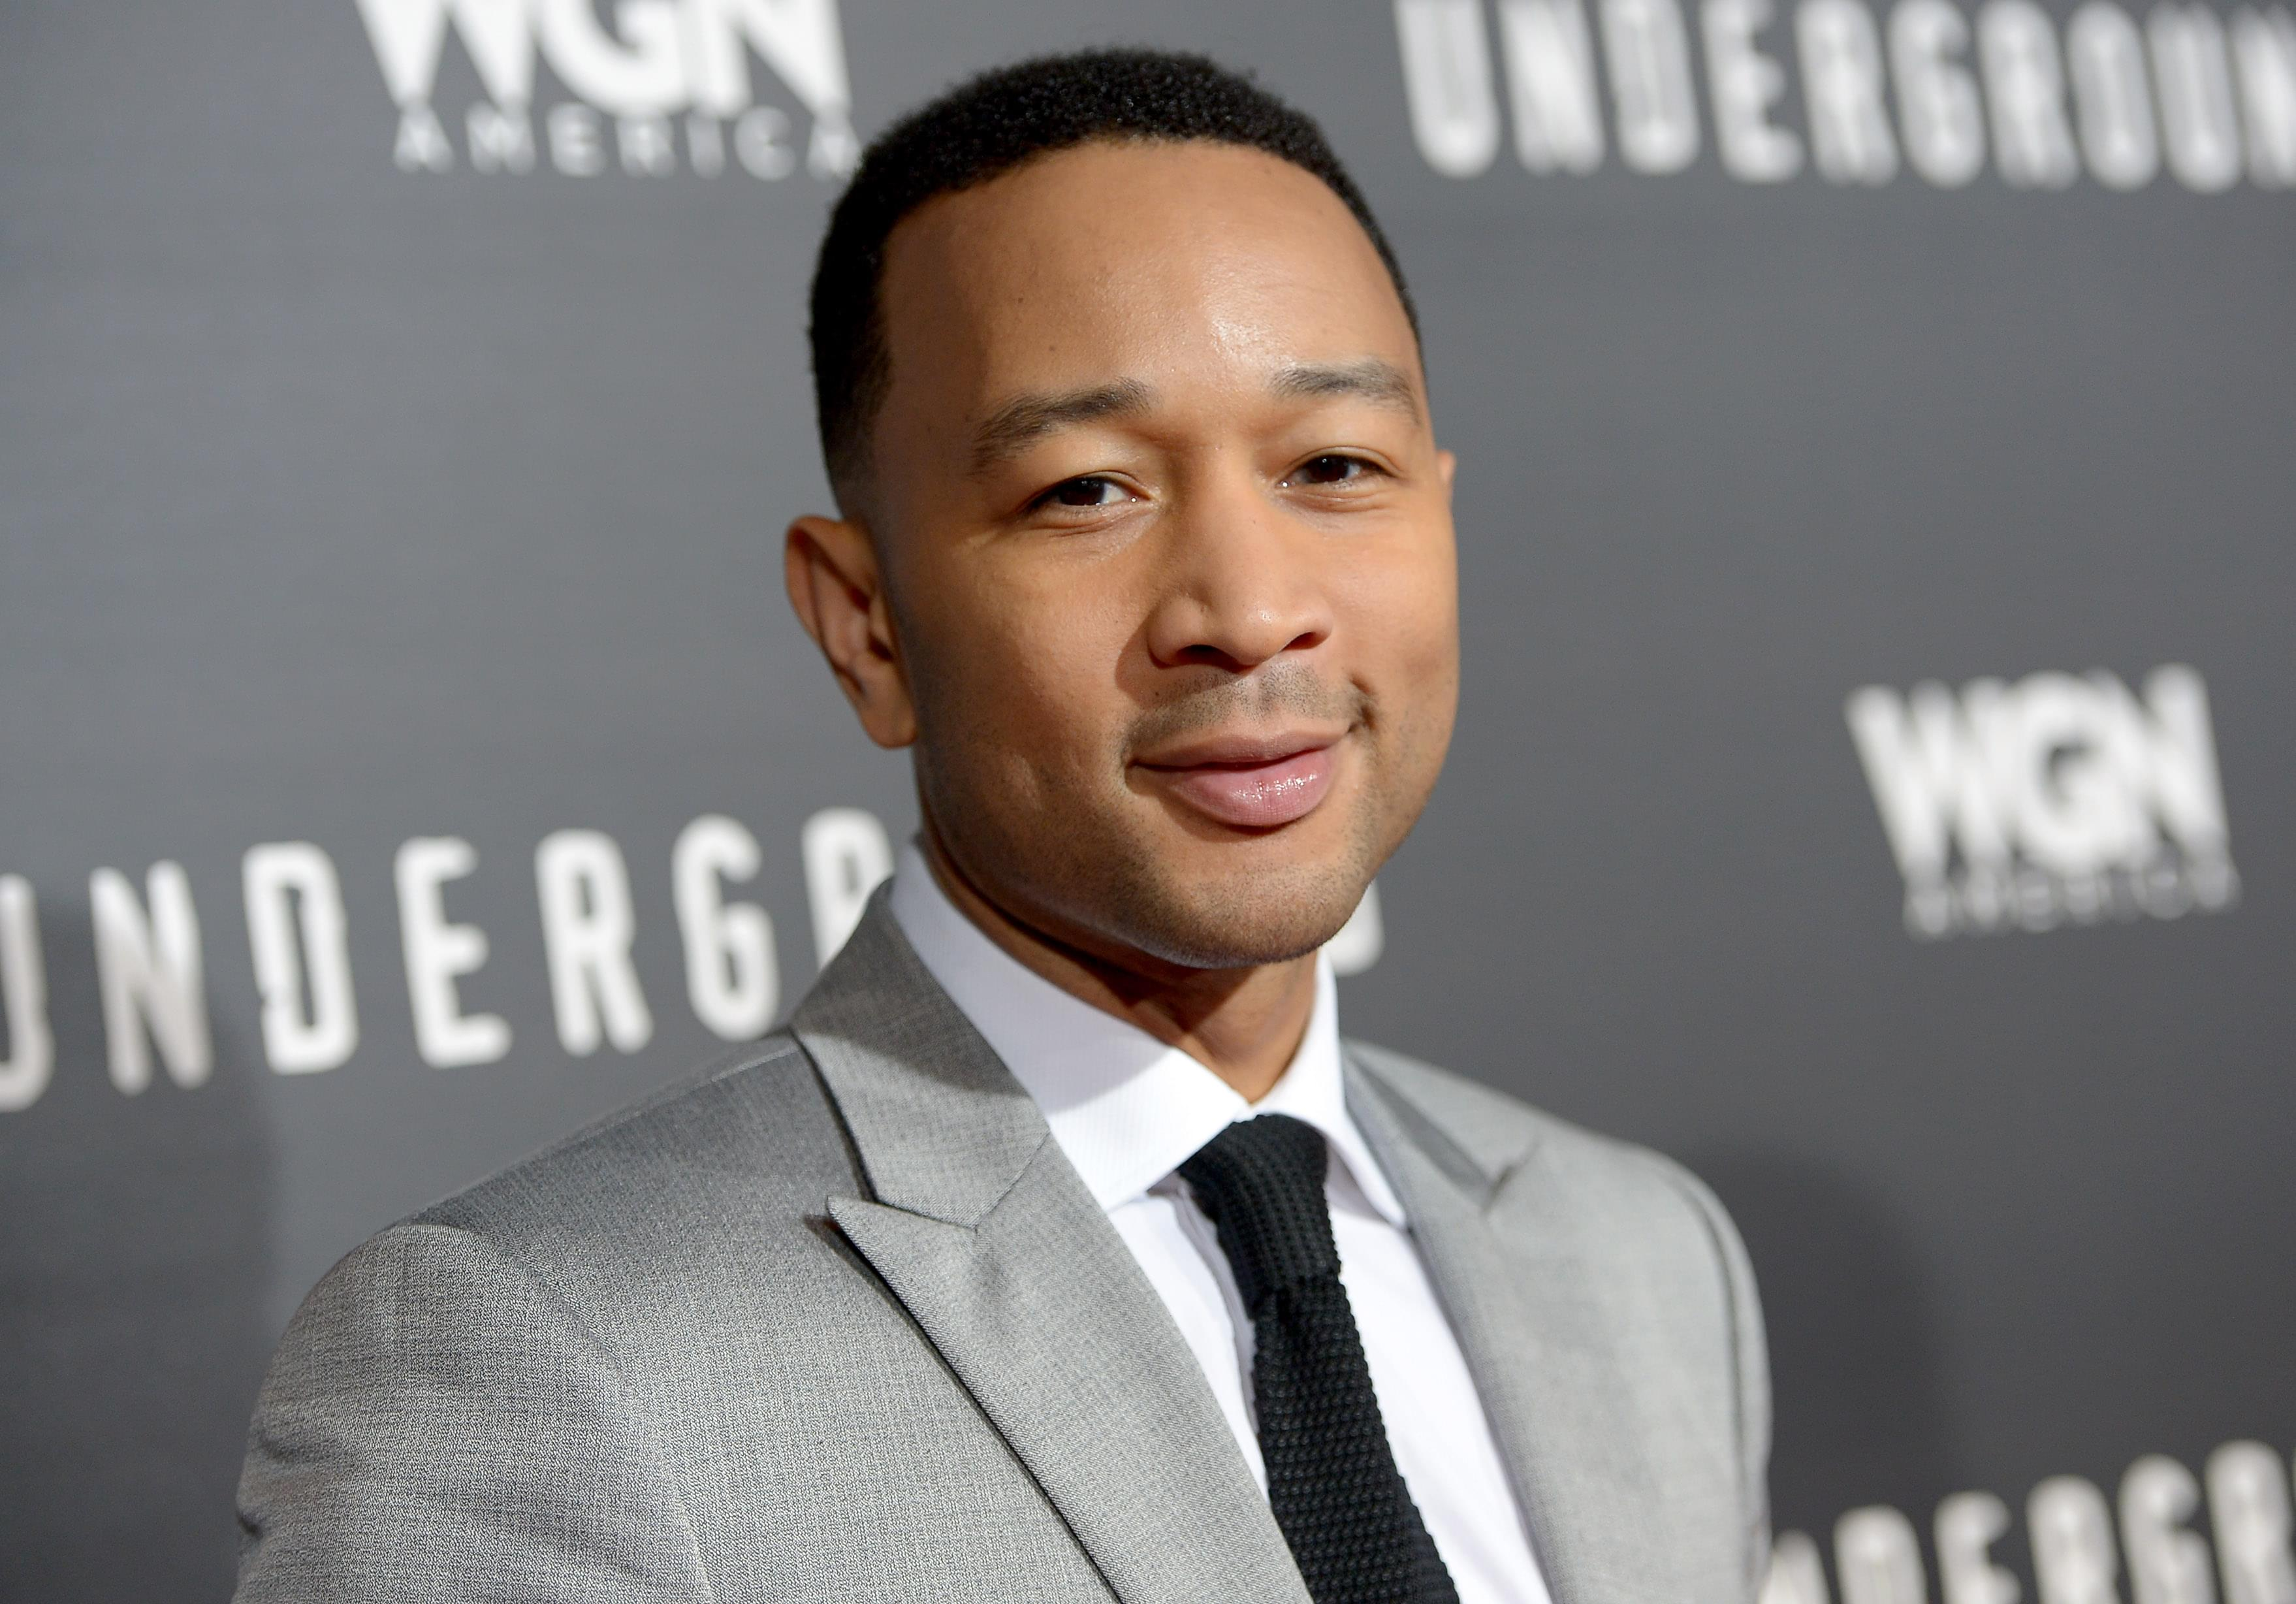 [WATCH] John Legend performs live from home